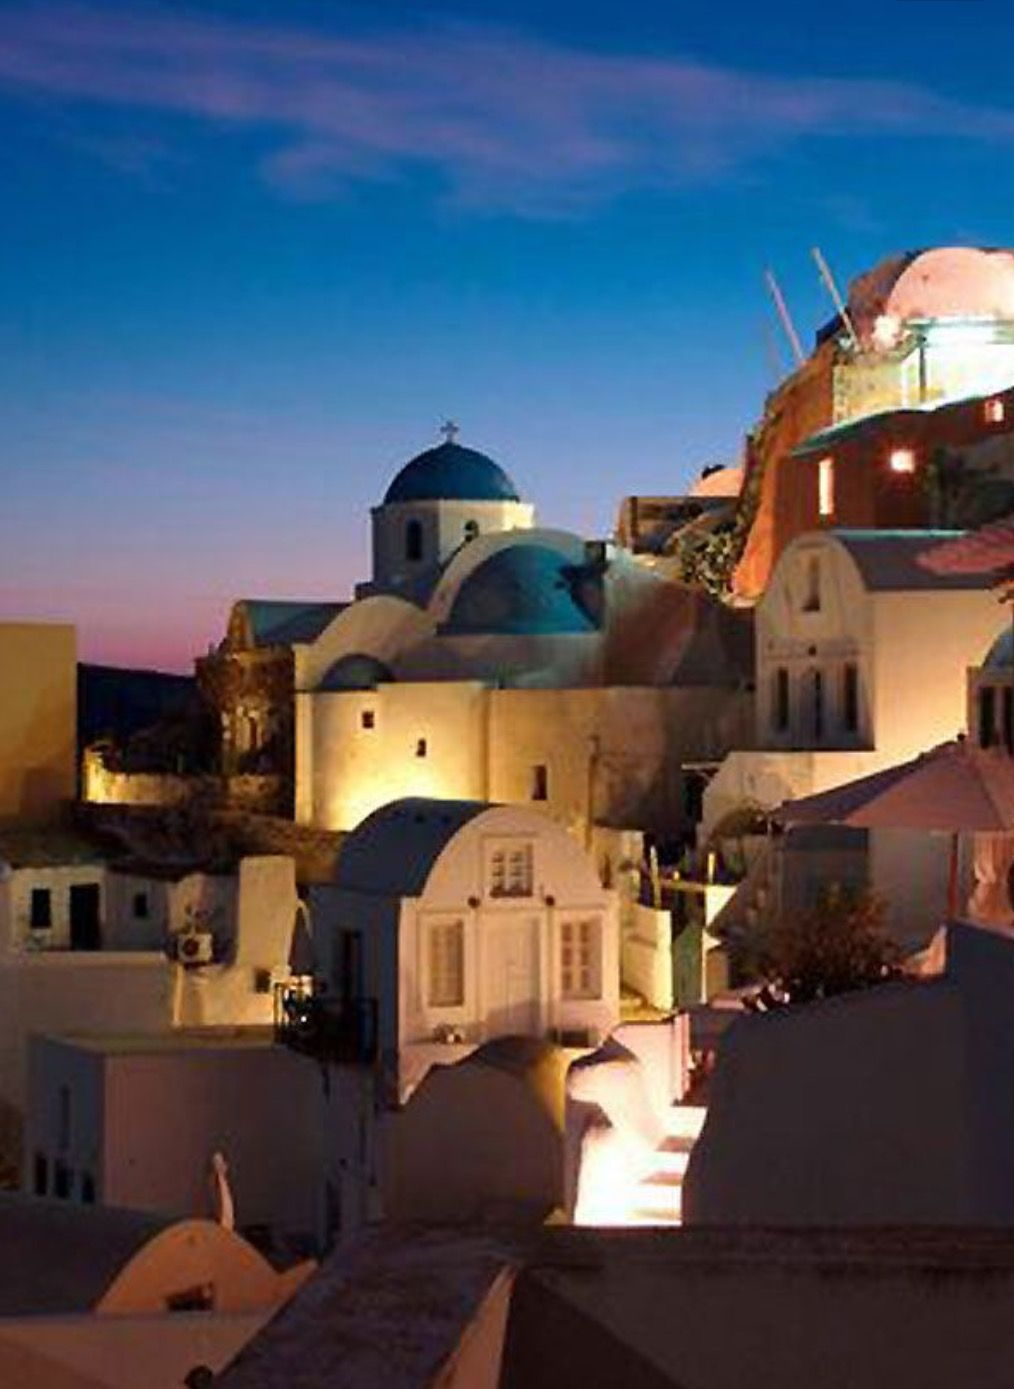 Spectacular sunset views from Oia village in Santorini ...